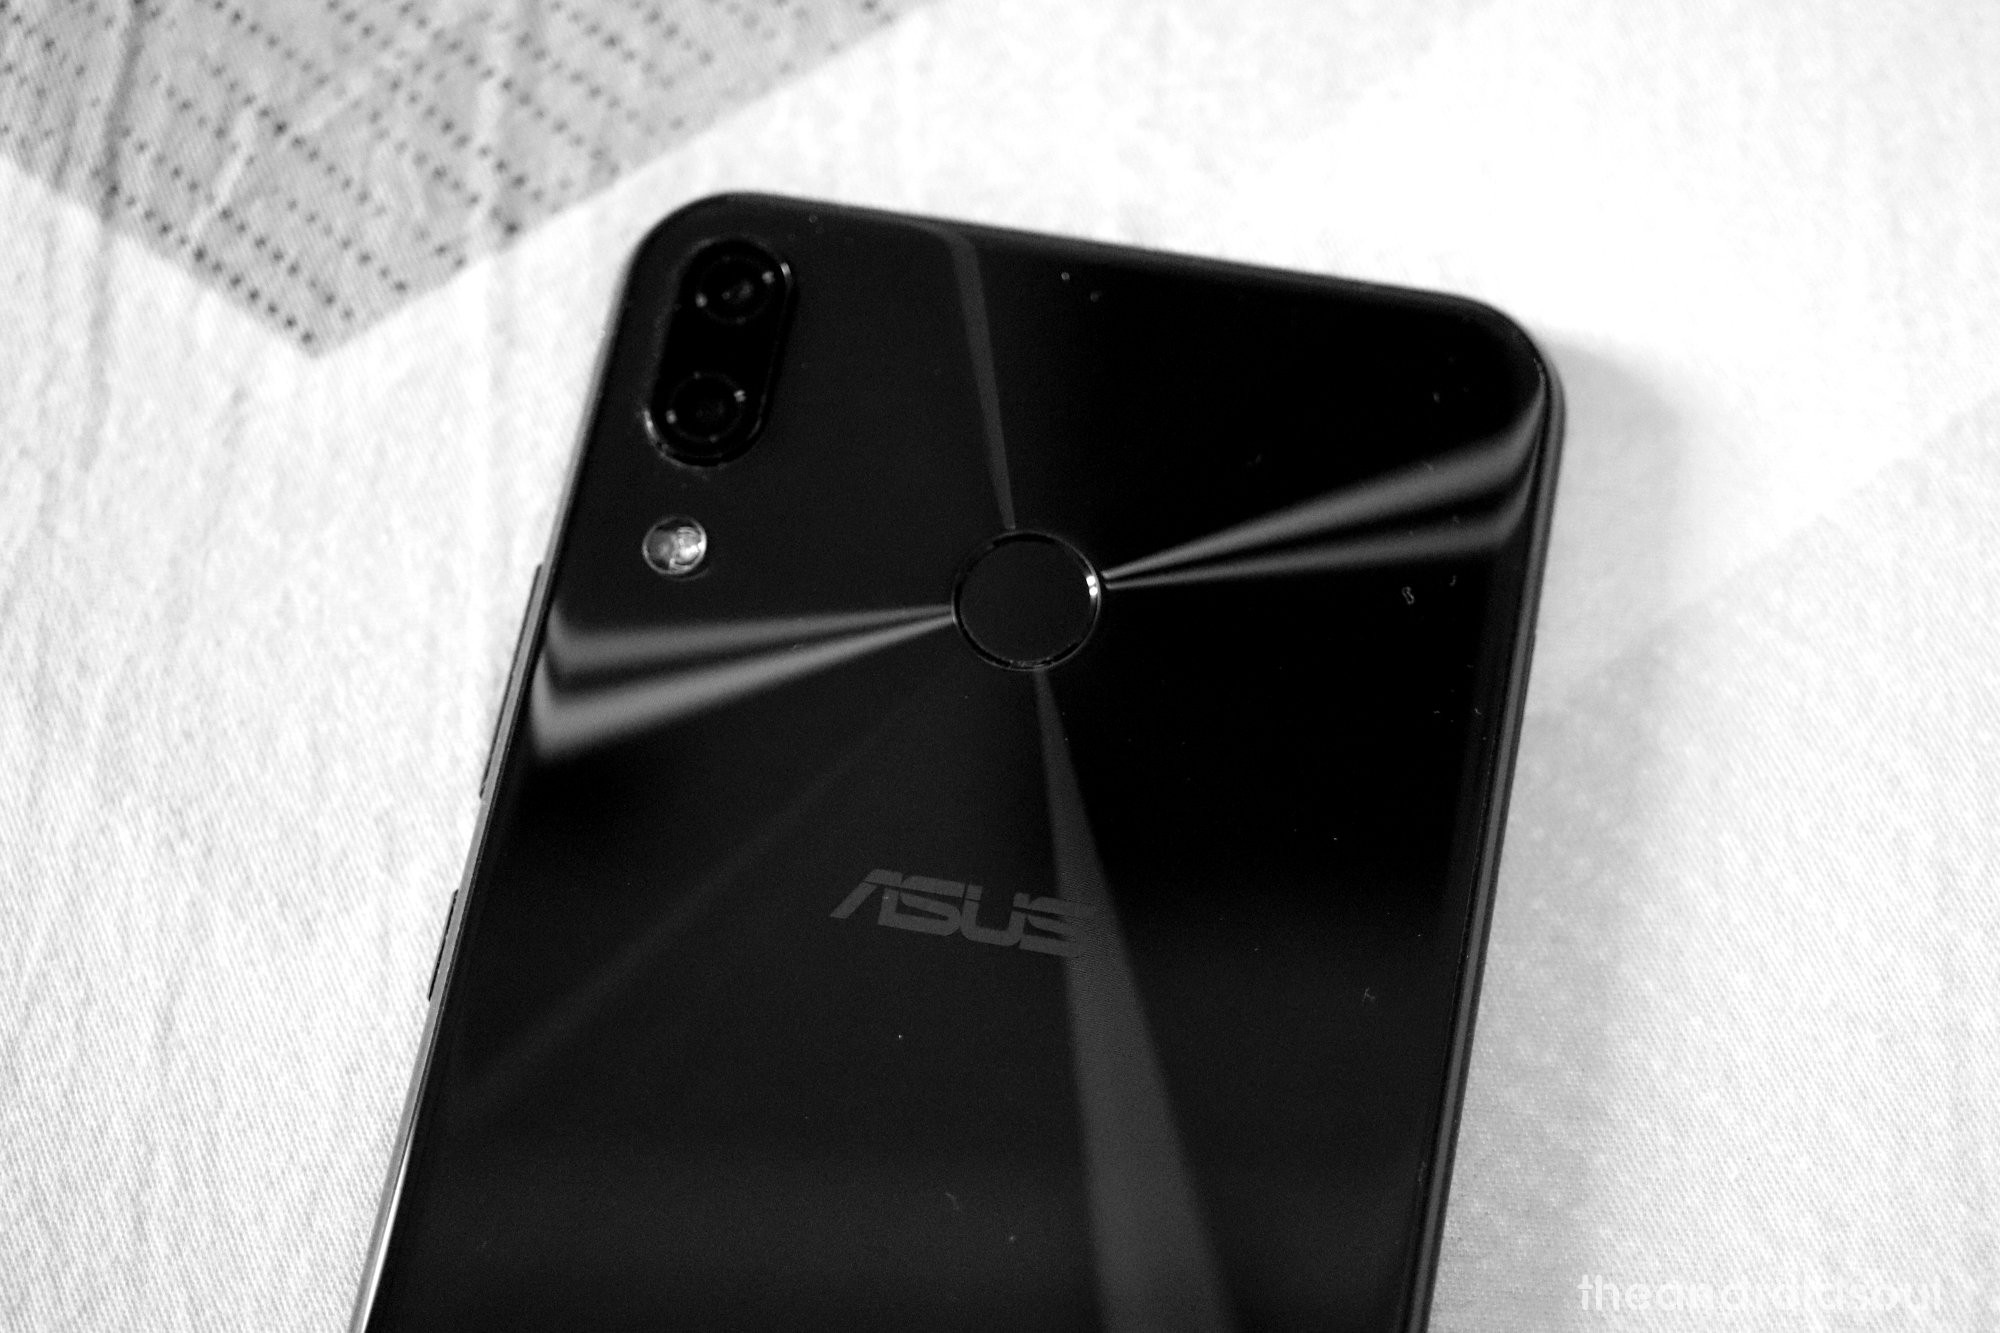 Asus Android 10 update